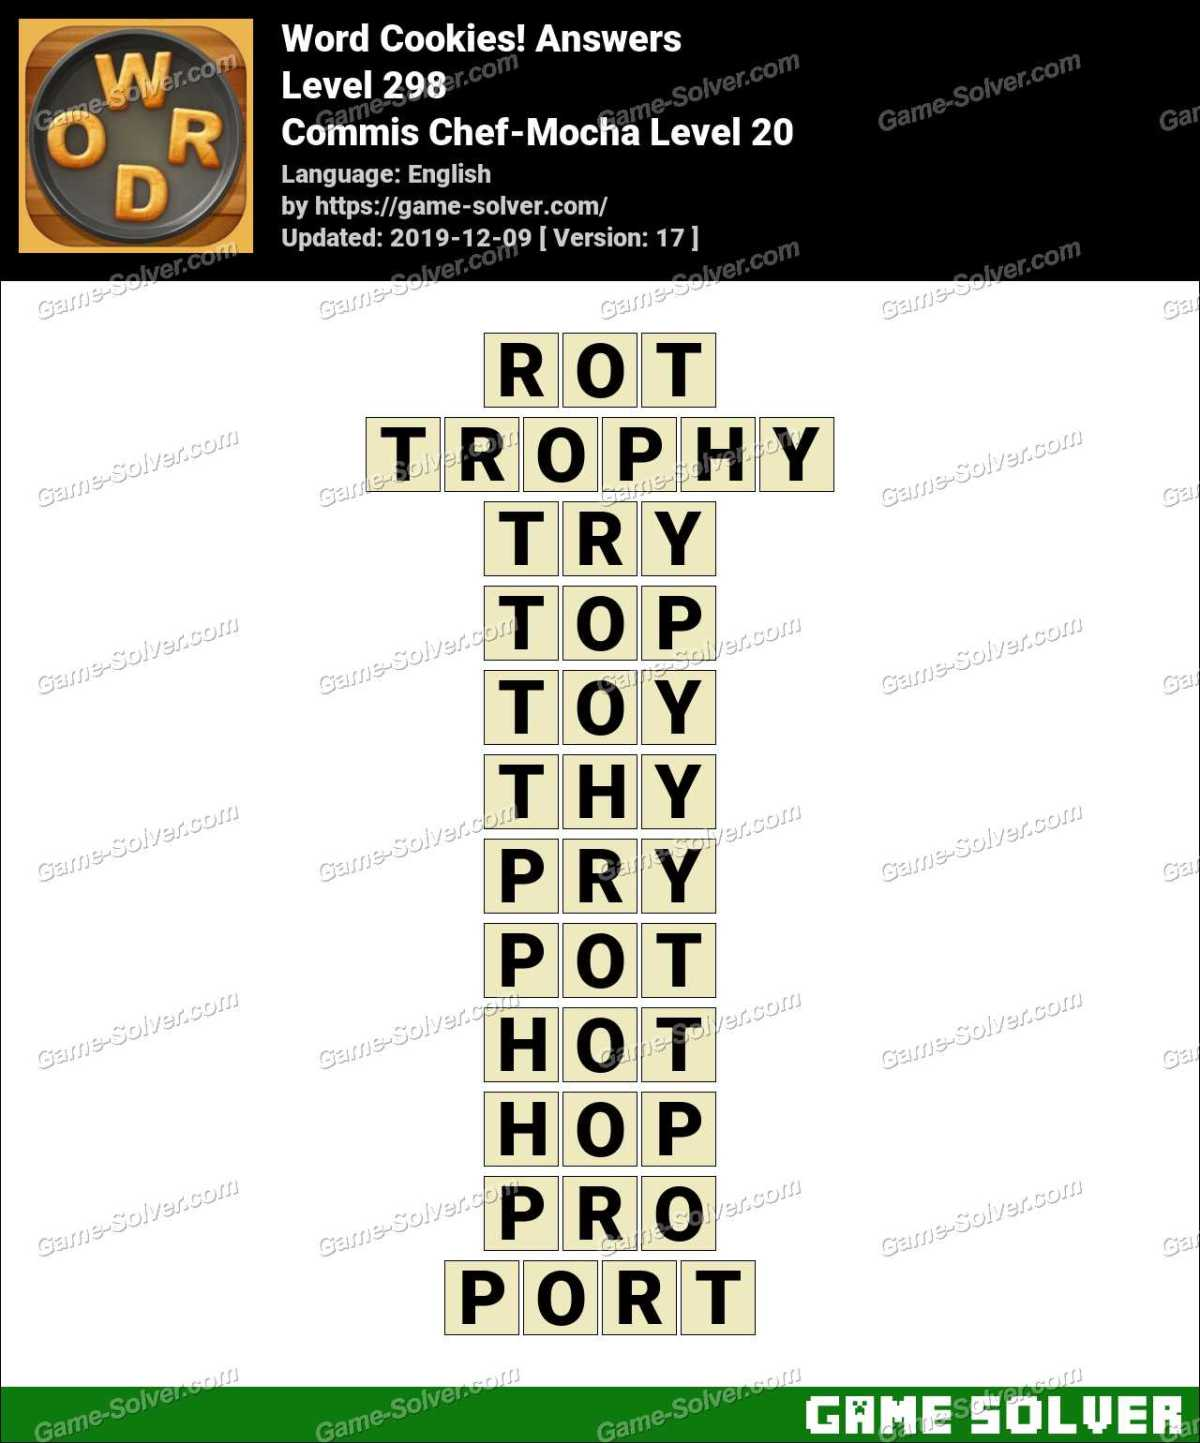 Word Cookies Commis Chef-Mocha Level 20 Answers